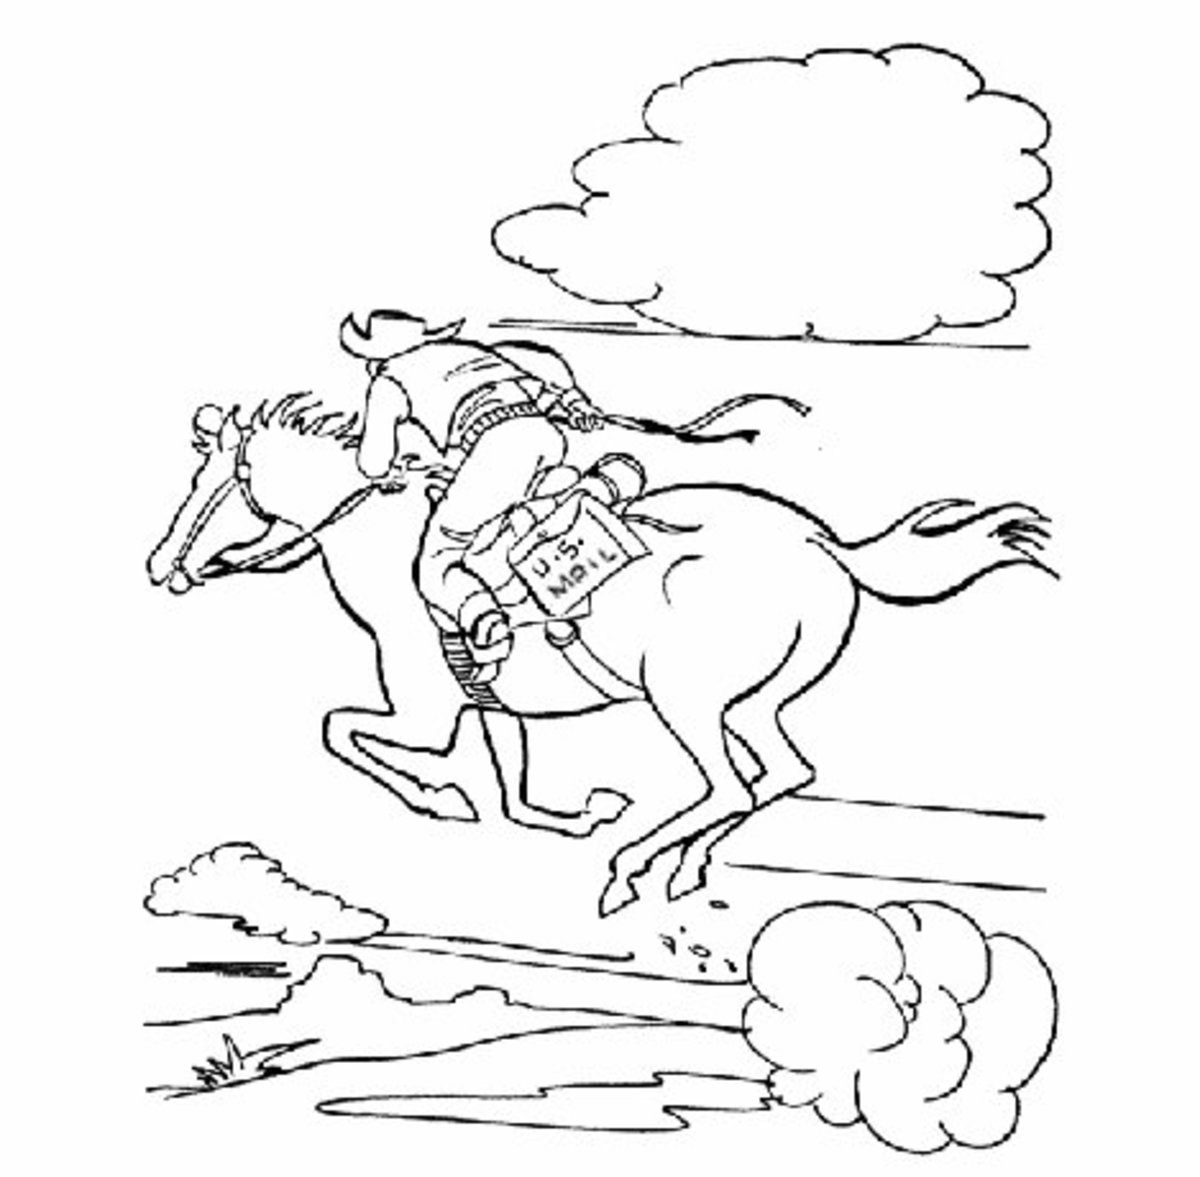 Free American History Pony Express Coloring Pages for Kids